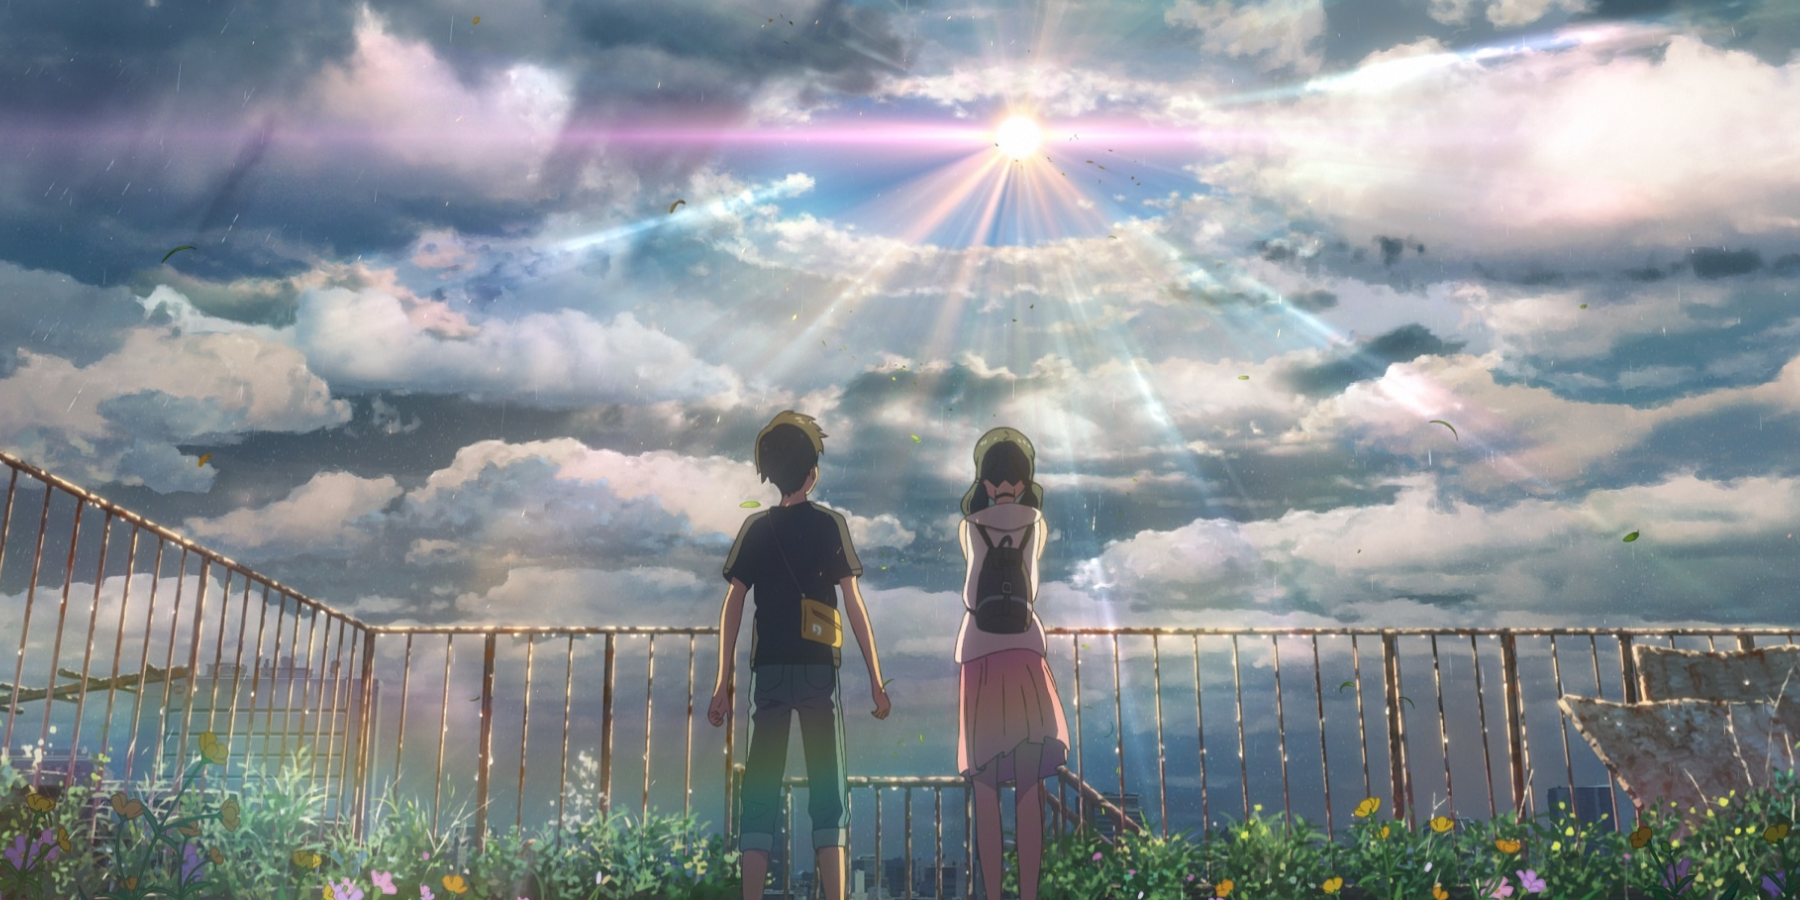 2019 Was a Big Year for Anime Films, But 2020 Could Be Even Bigger